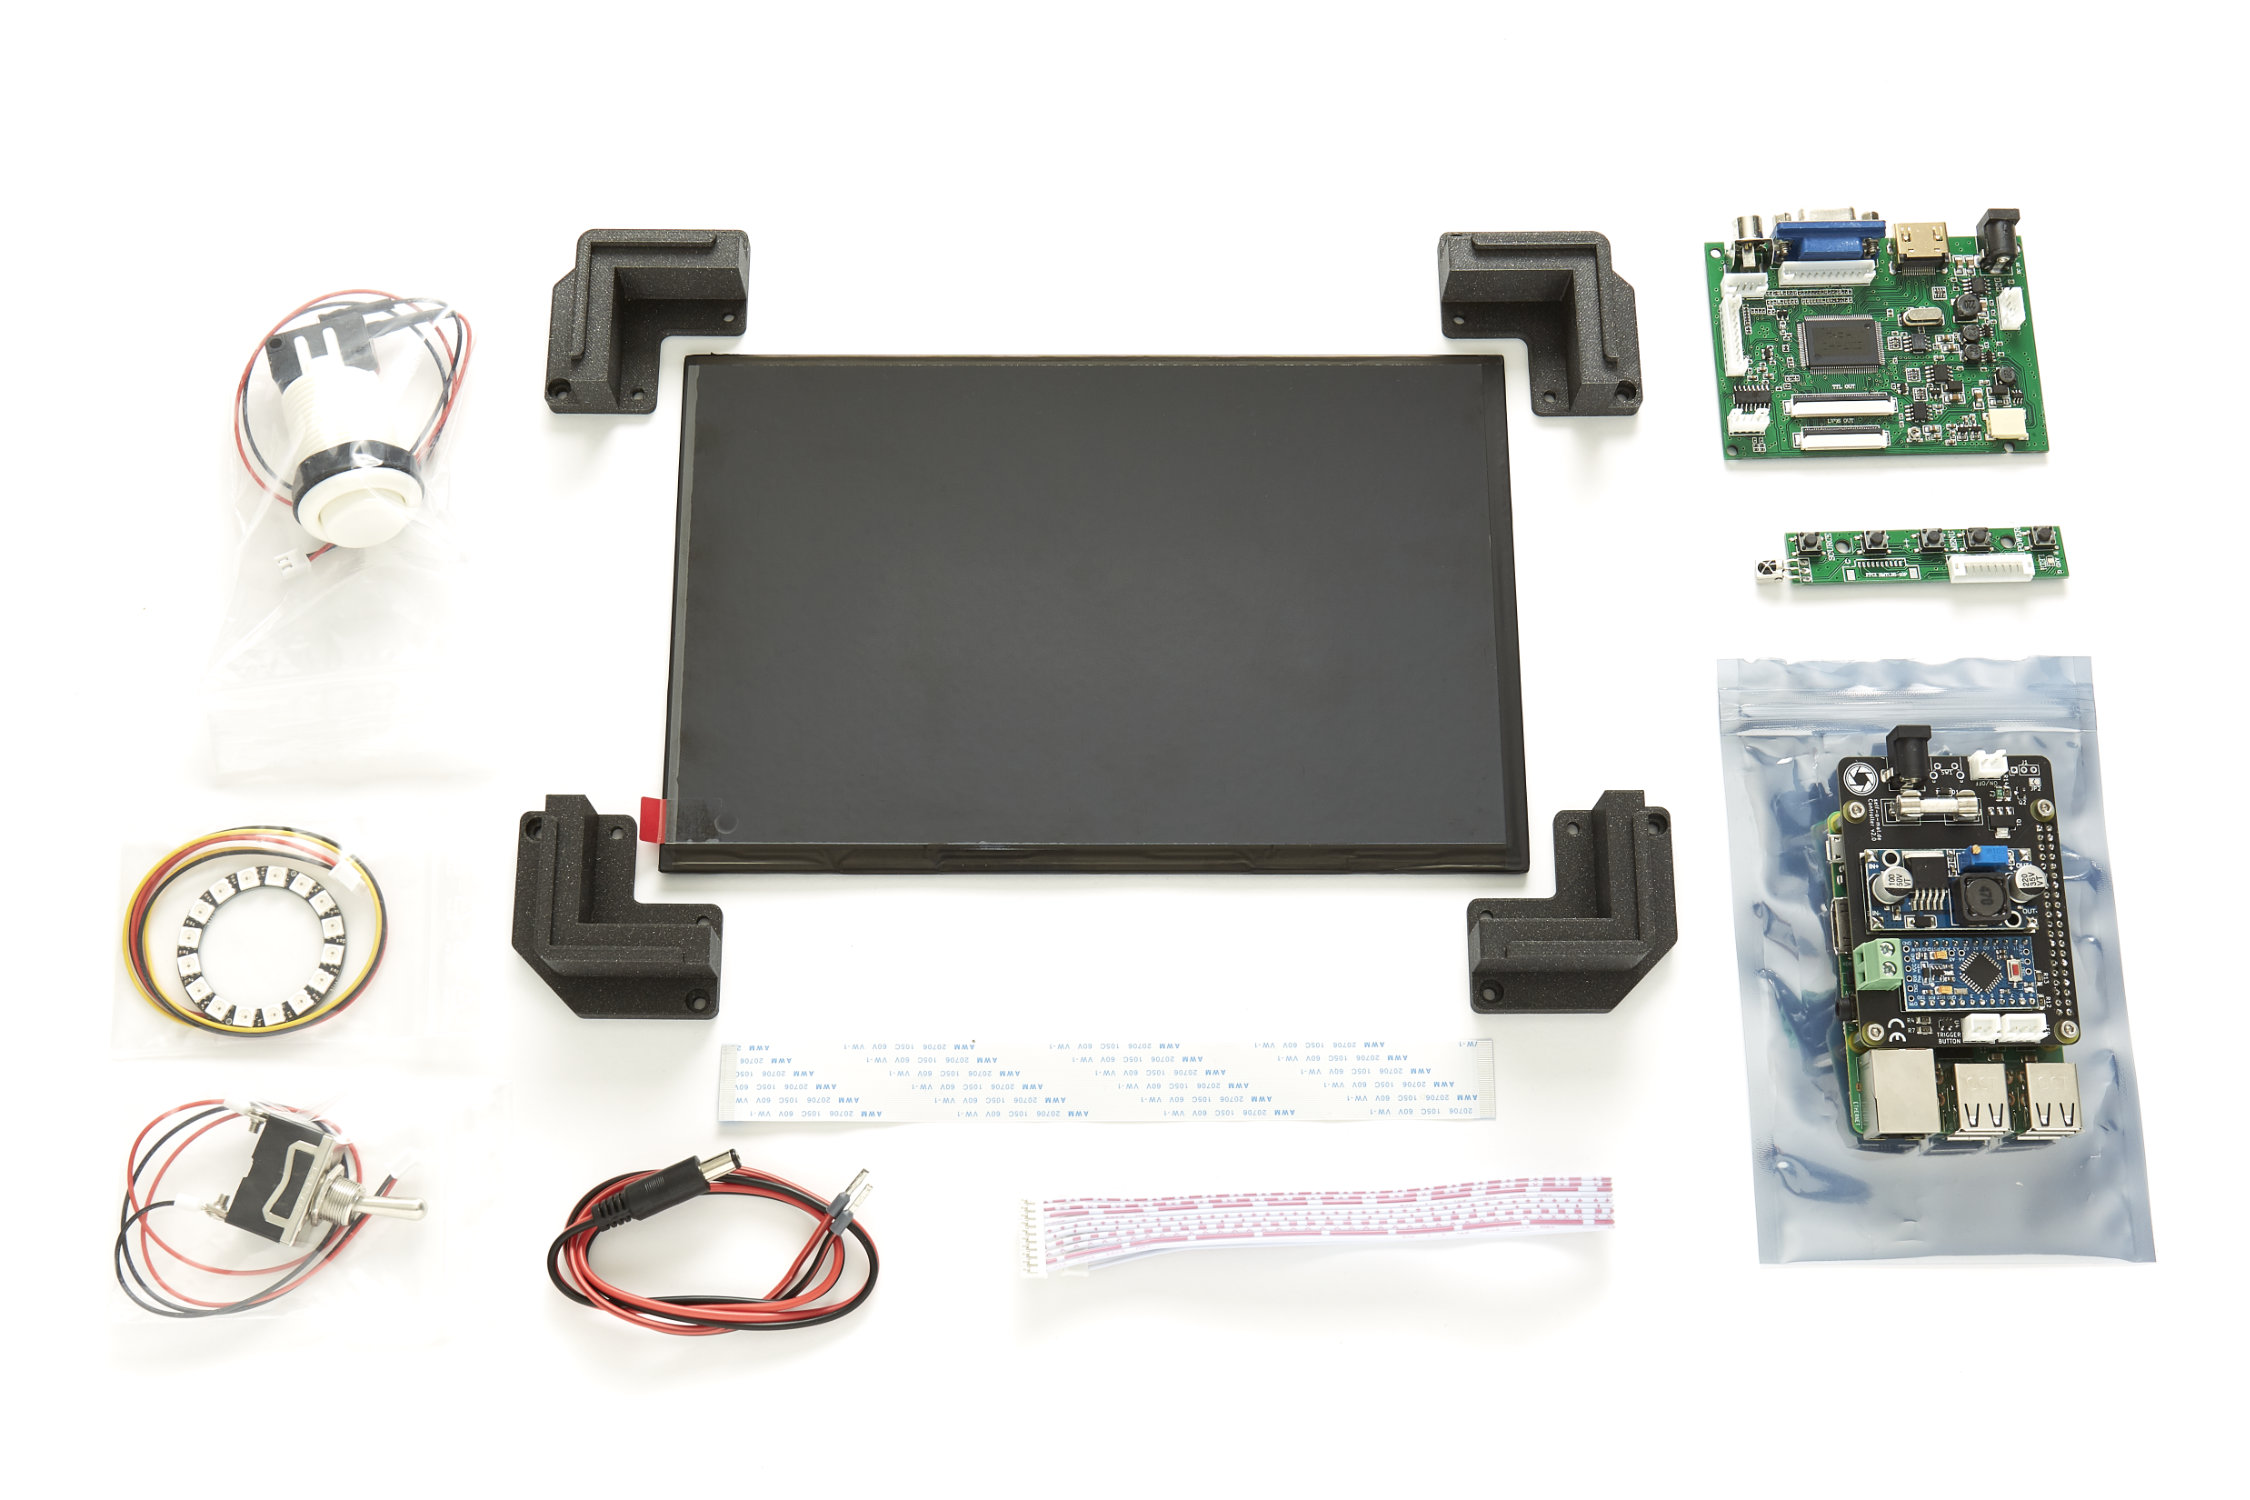 All the electronics you need is included in your self-o-mat photobooth kit.